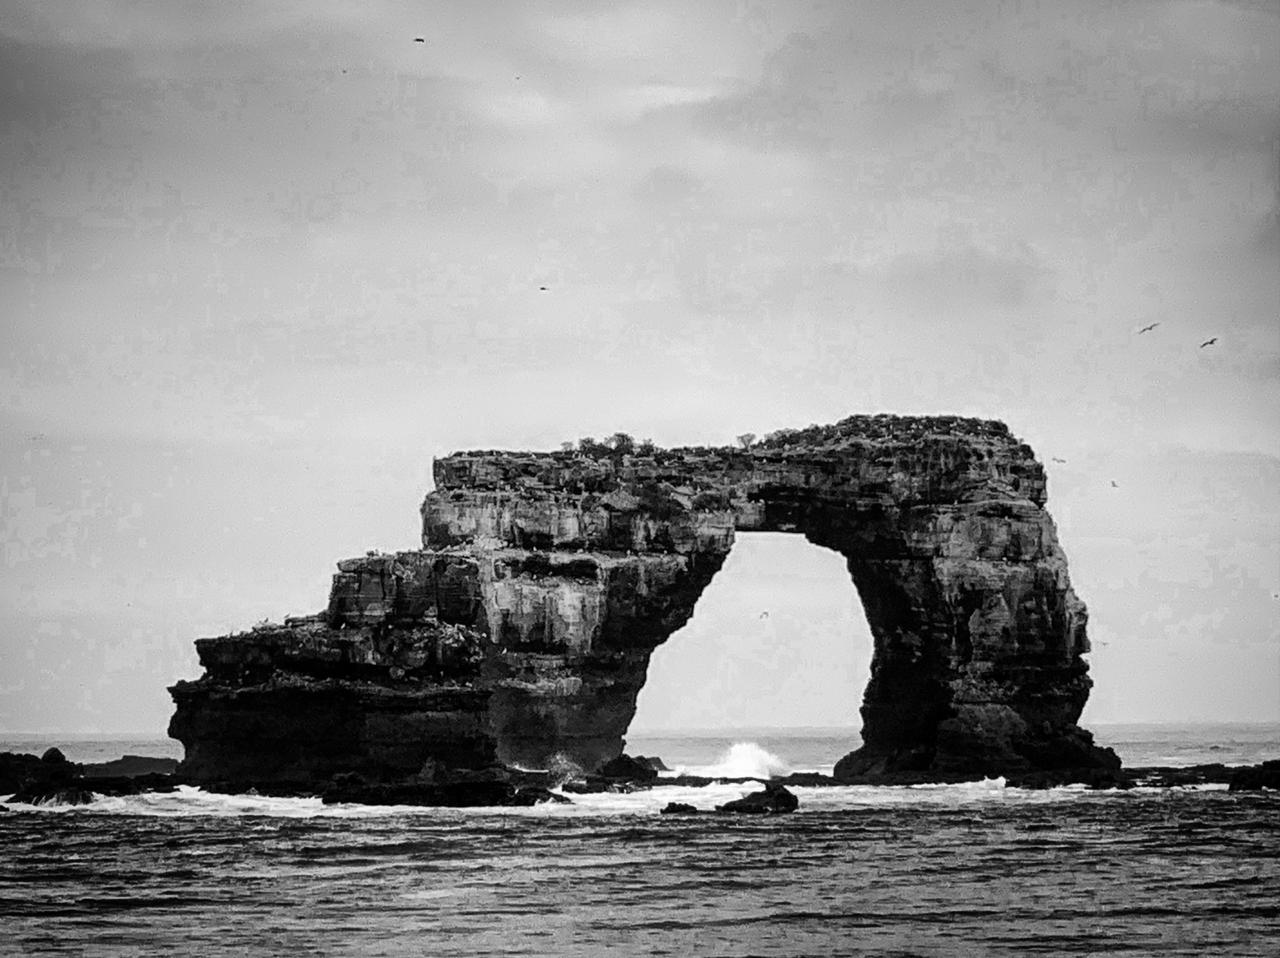 Darwin's Arch and a rippling sea